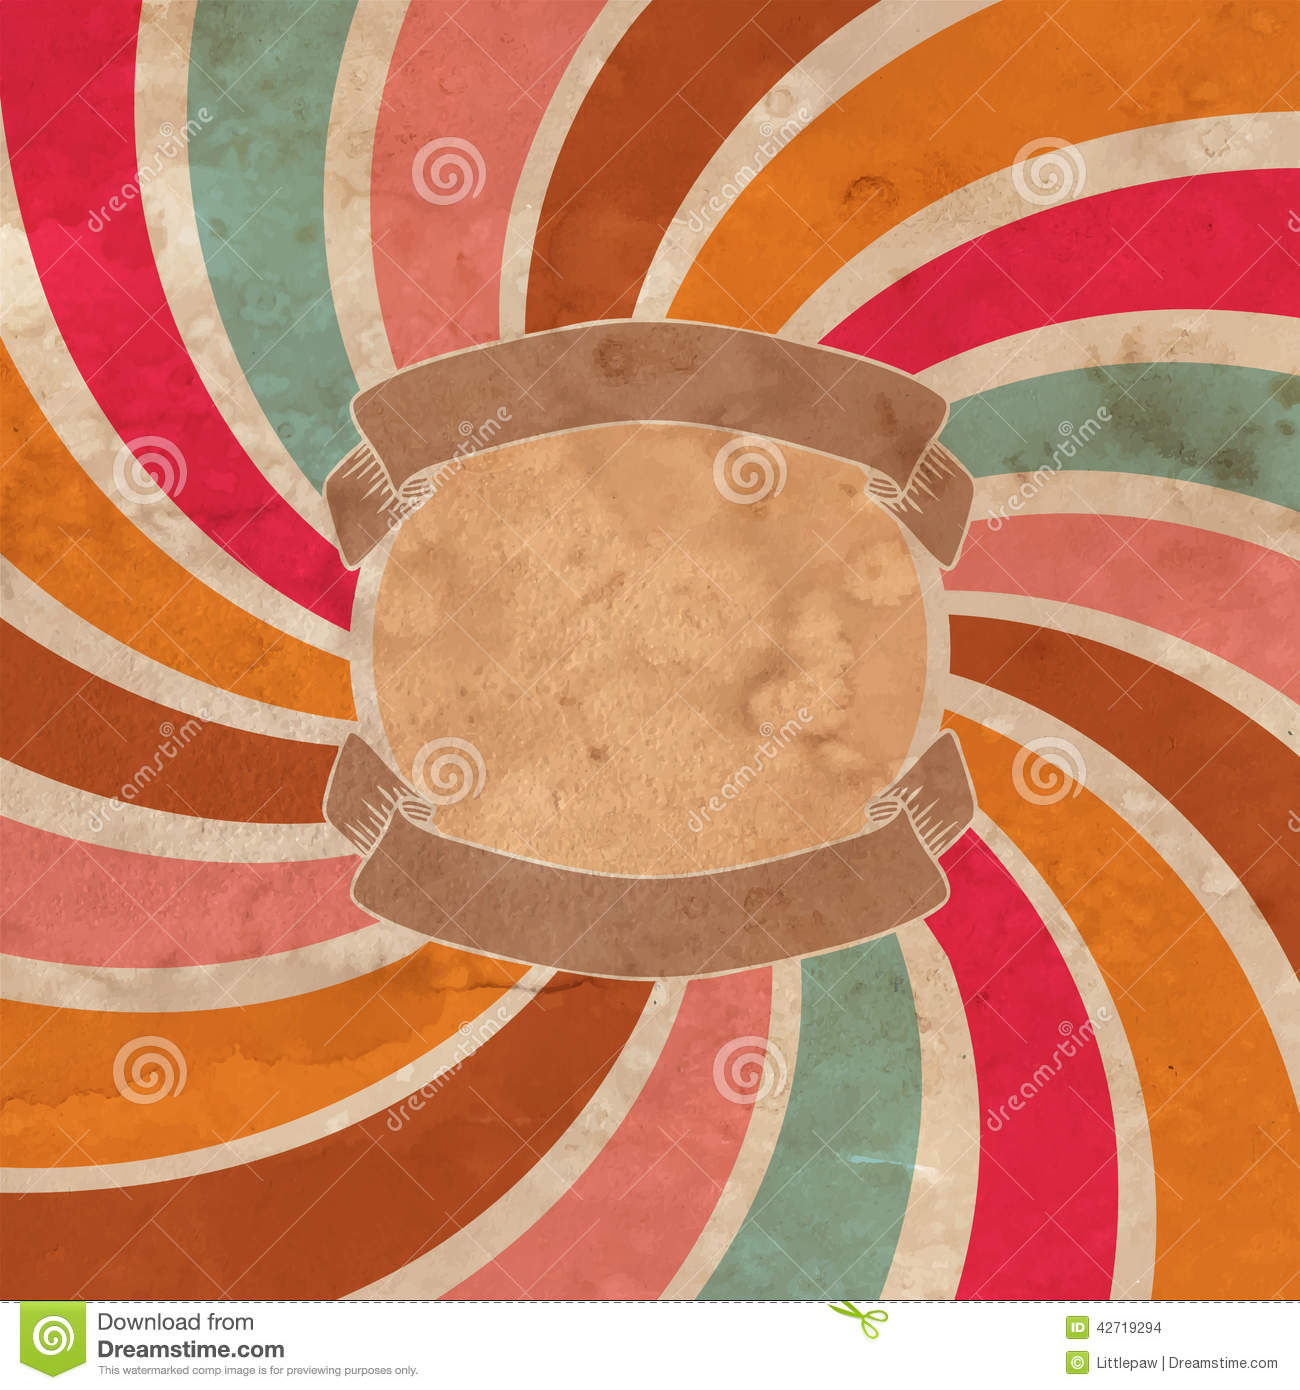 vintage circus background stock vector. illustration of stripe